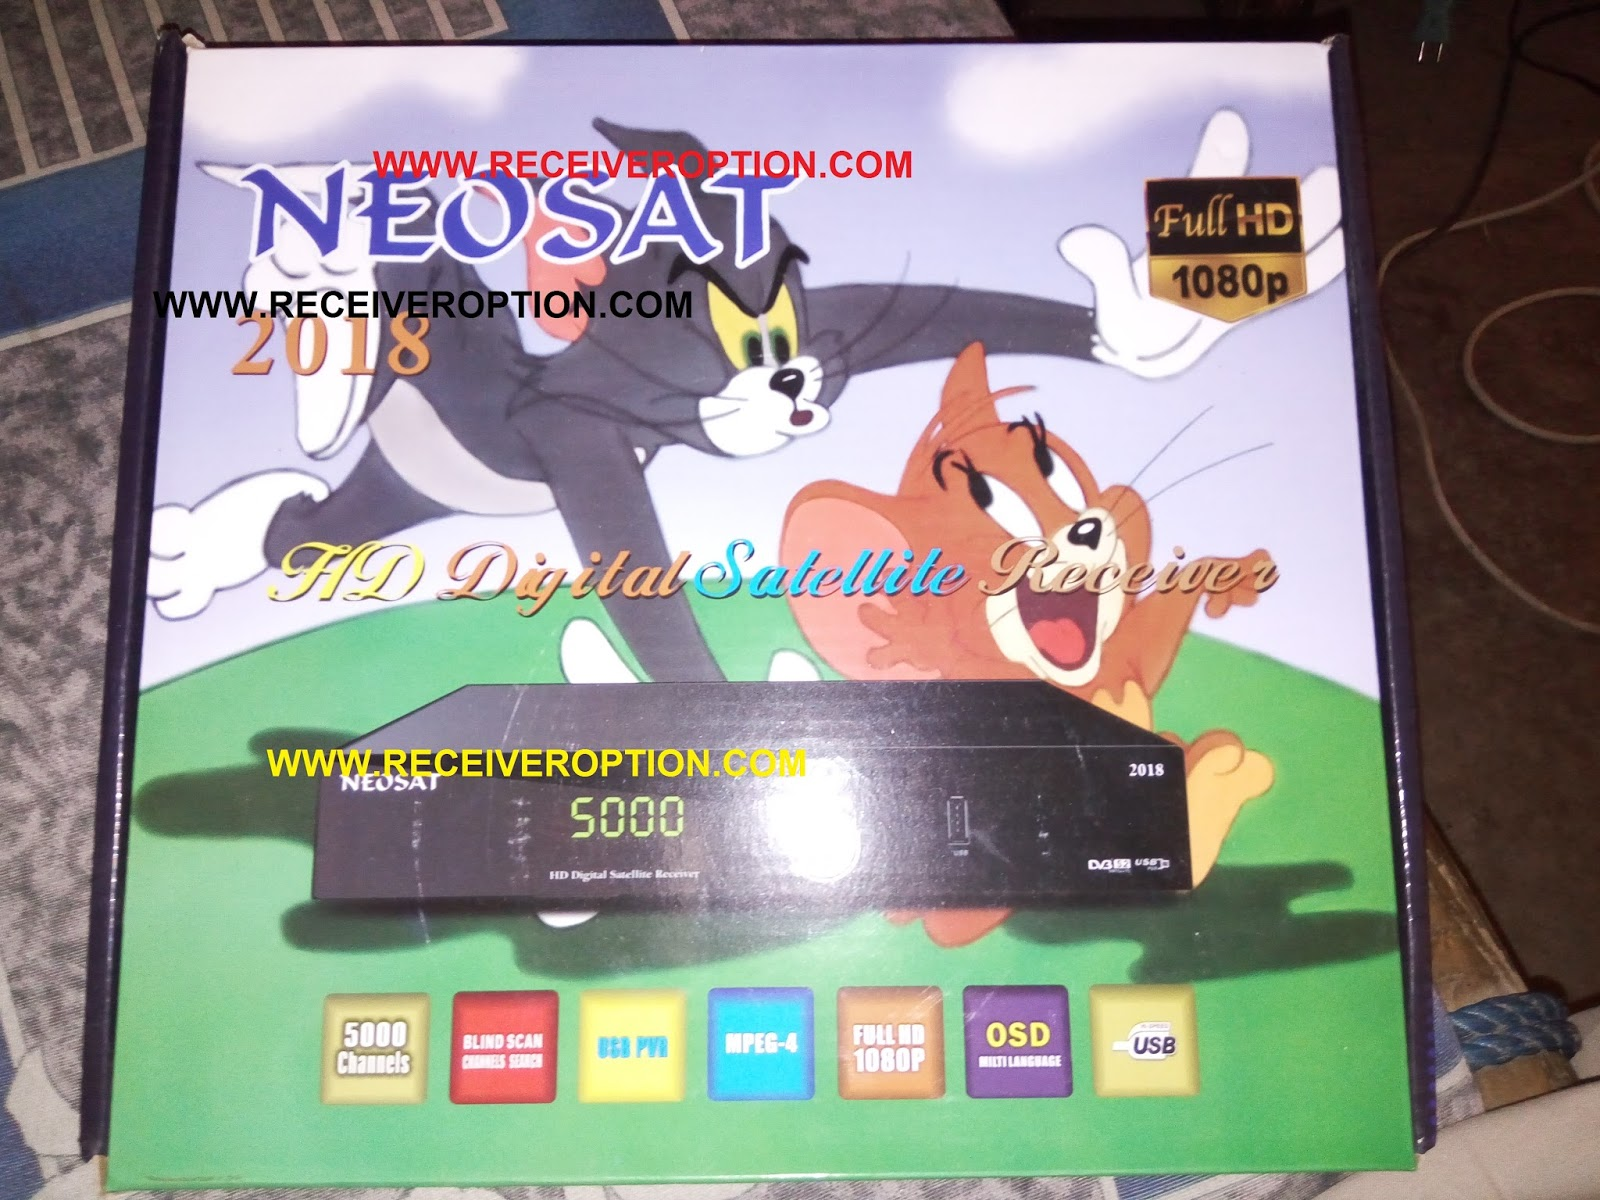 HOW TO CONNECT WIFI IN NEOSAT 2018 HD RECEIVER - HOW TO